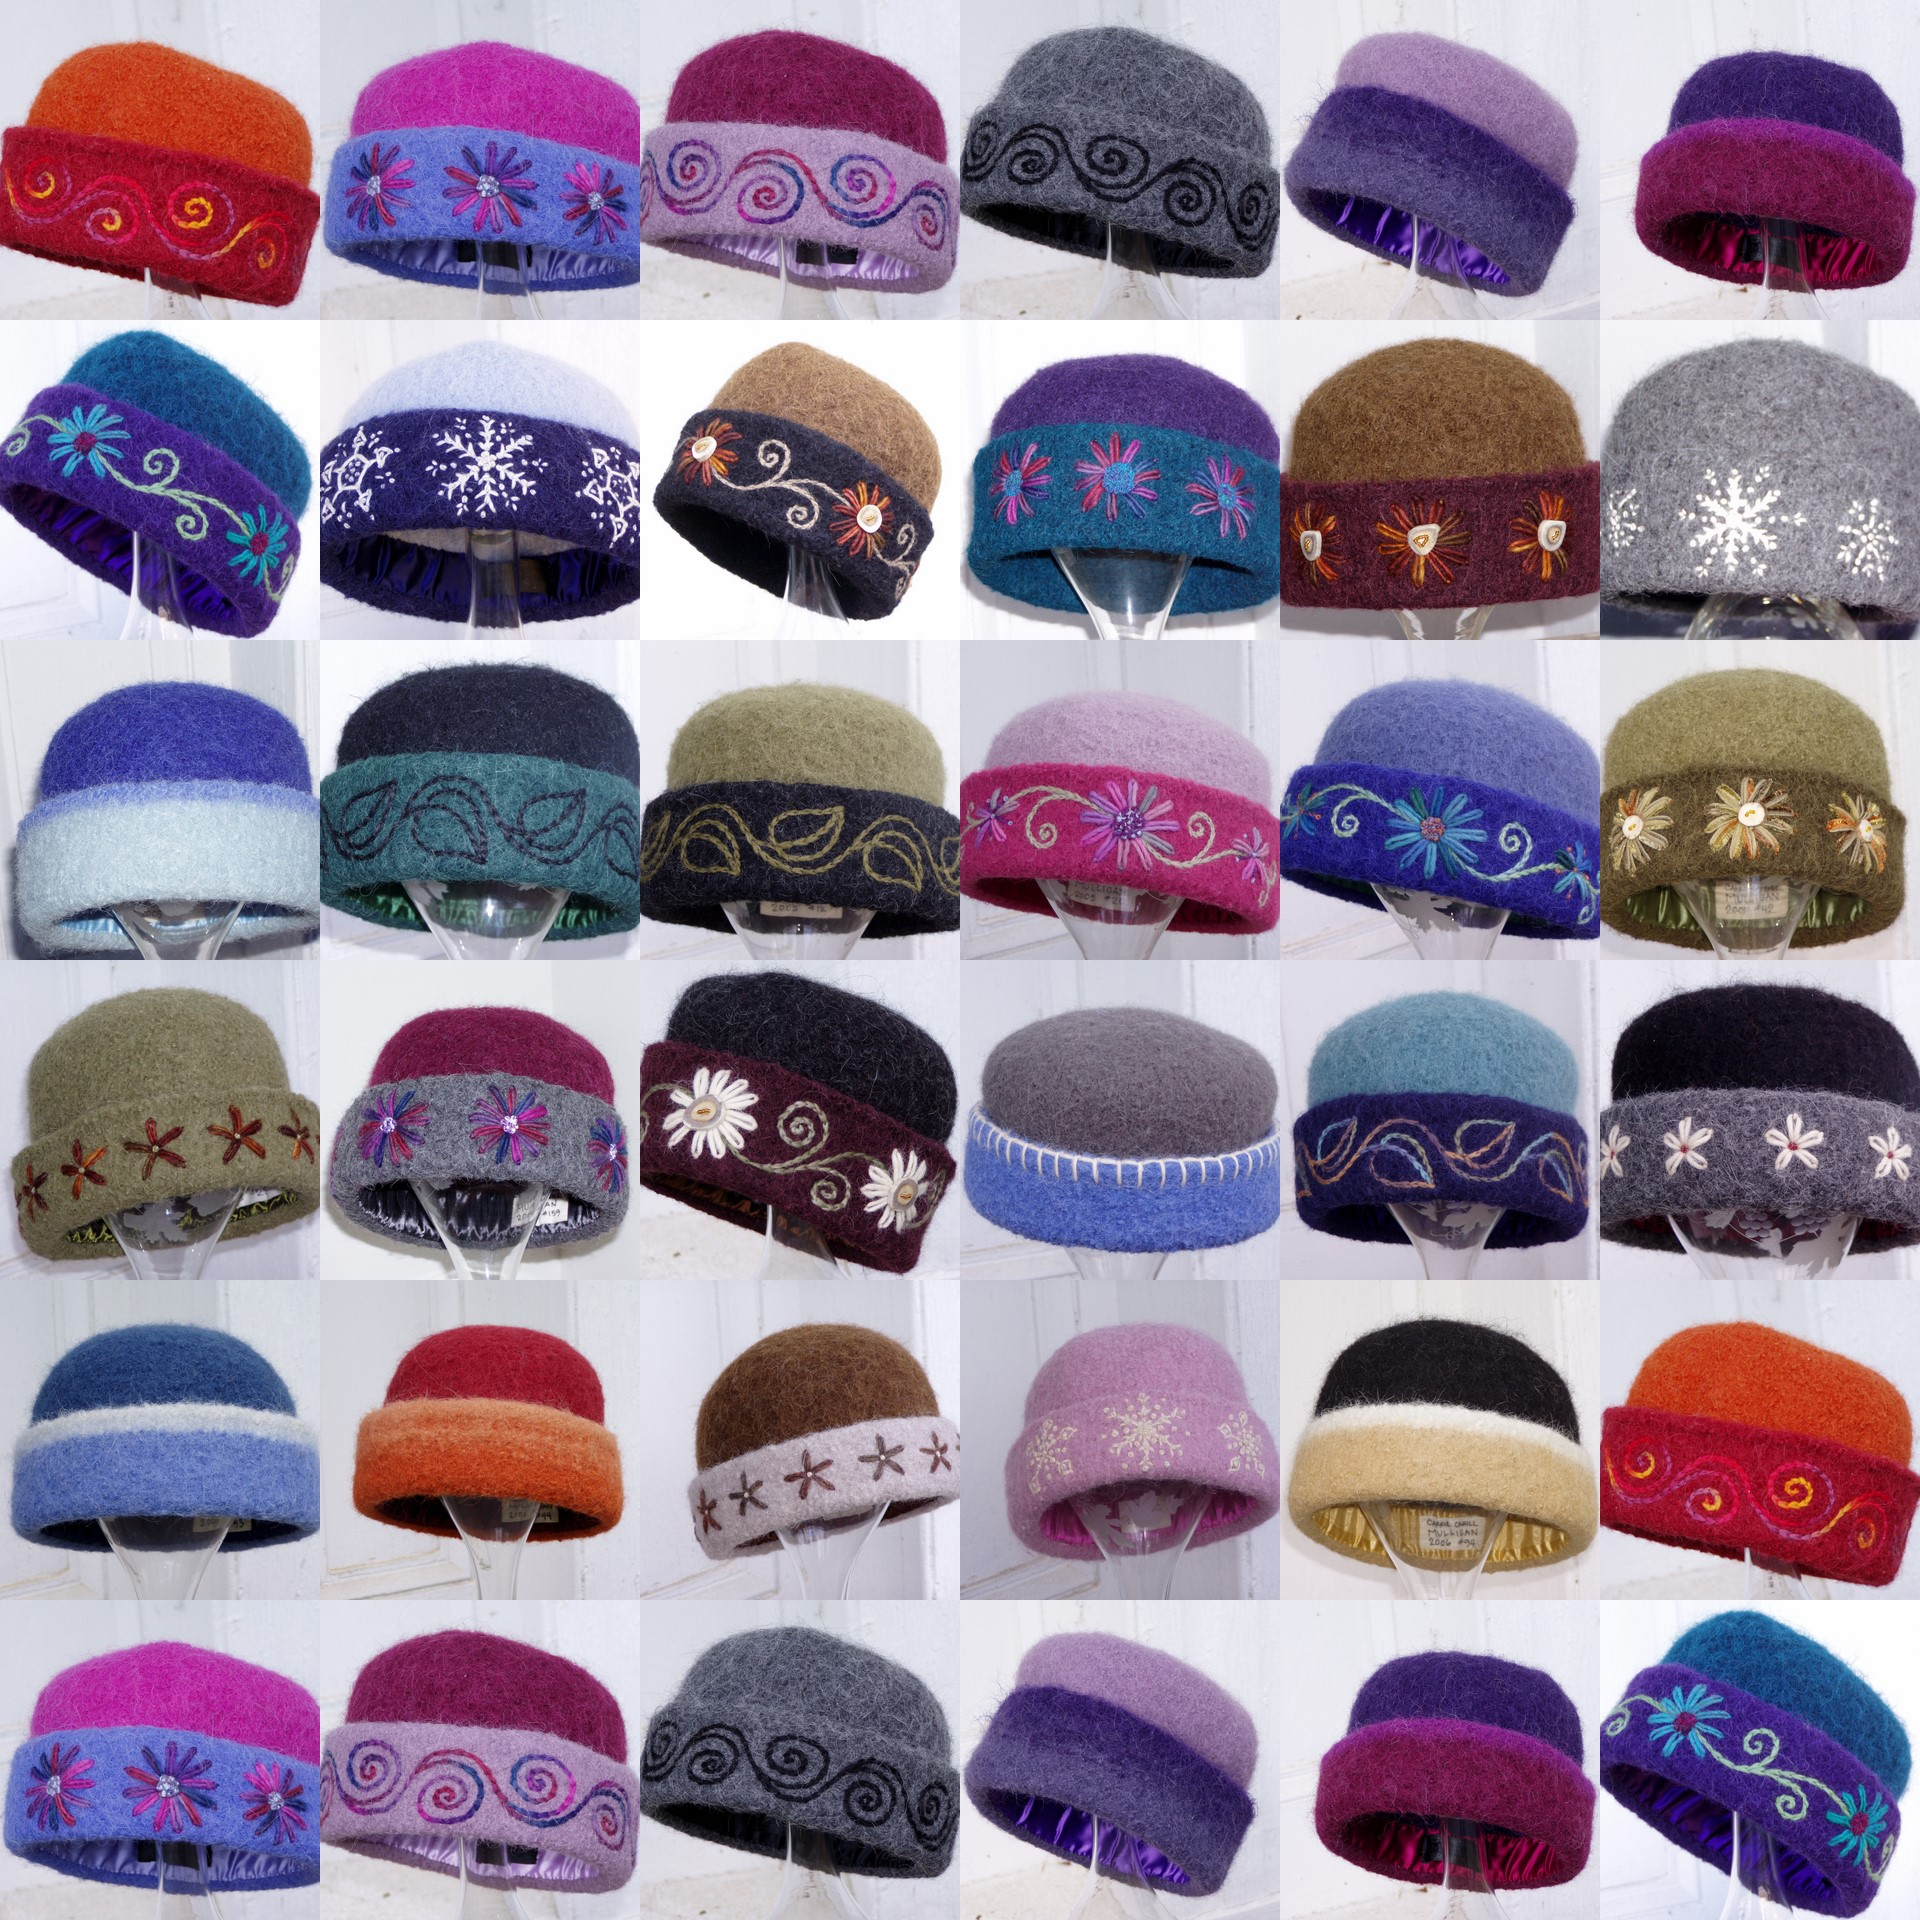 Collage of felt hats by NH fiber artist, Carrie Cahill Mulligan